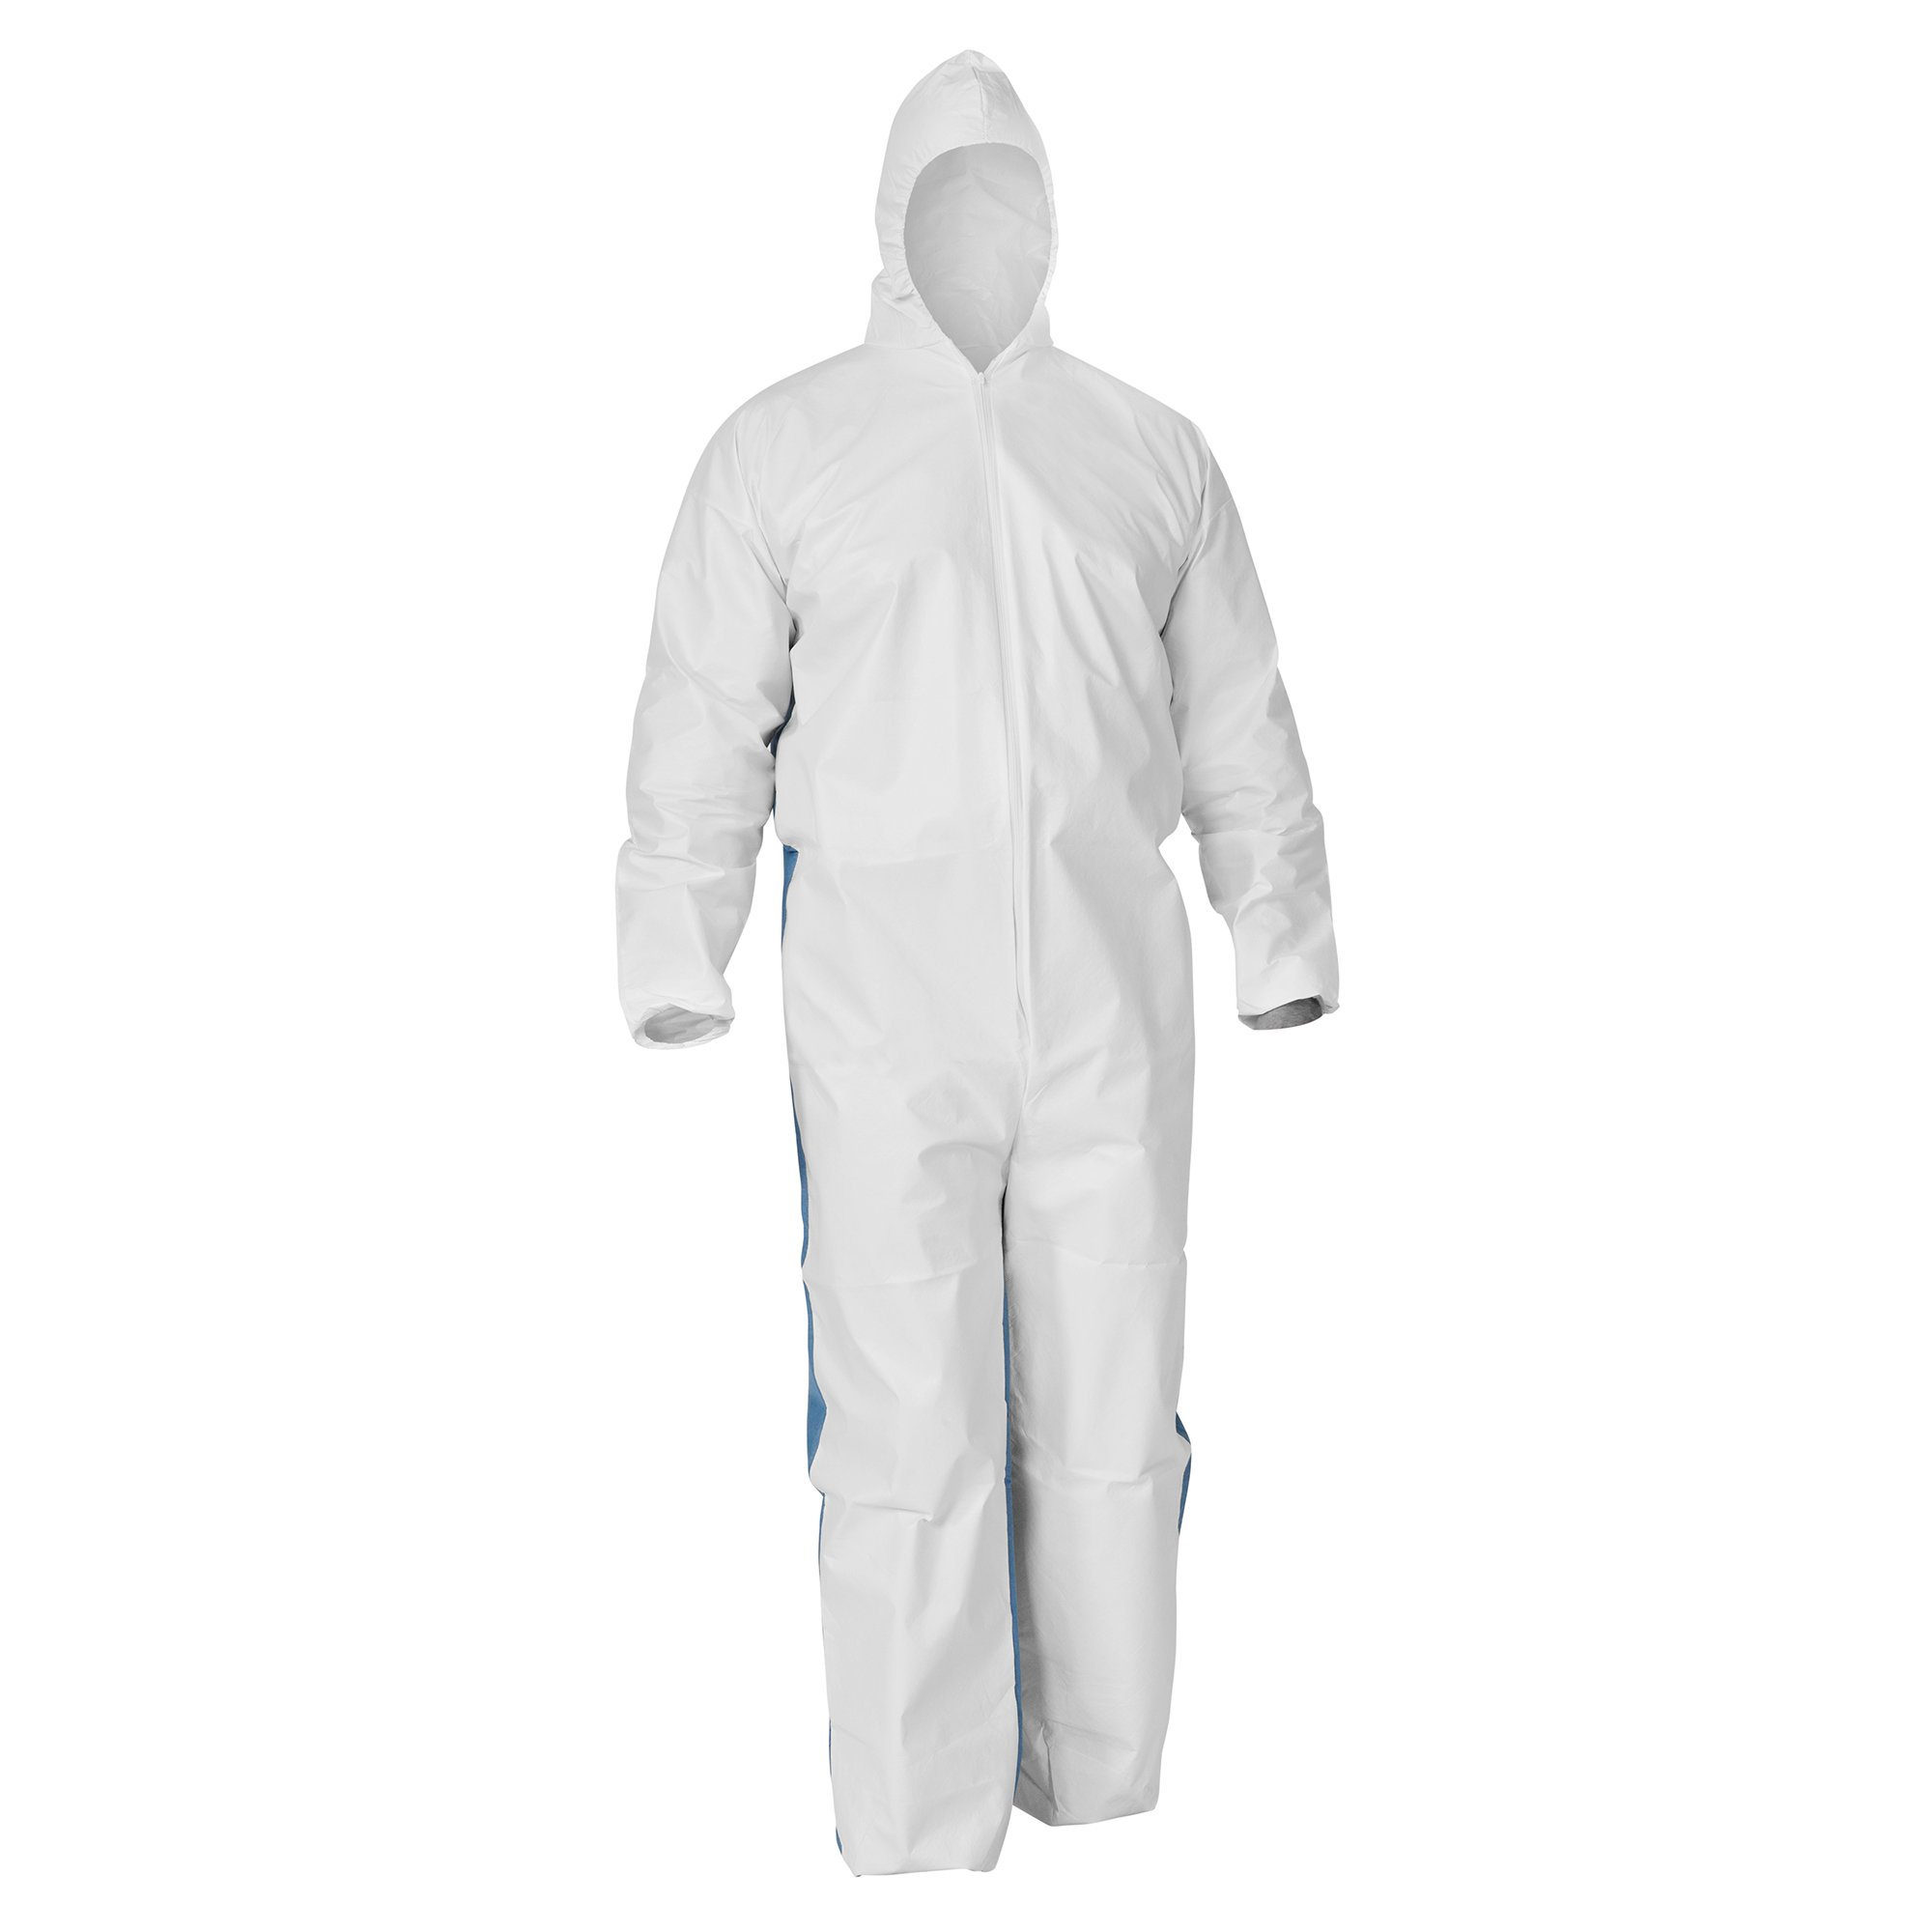 Kleenguard A40 Liquid & Particle Protection Coveralls (37591) with Blue Breathable Back, Zipper Front, Hood, EWA, White, Large, 25 / Case